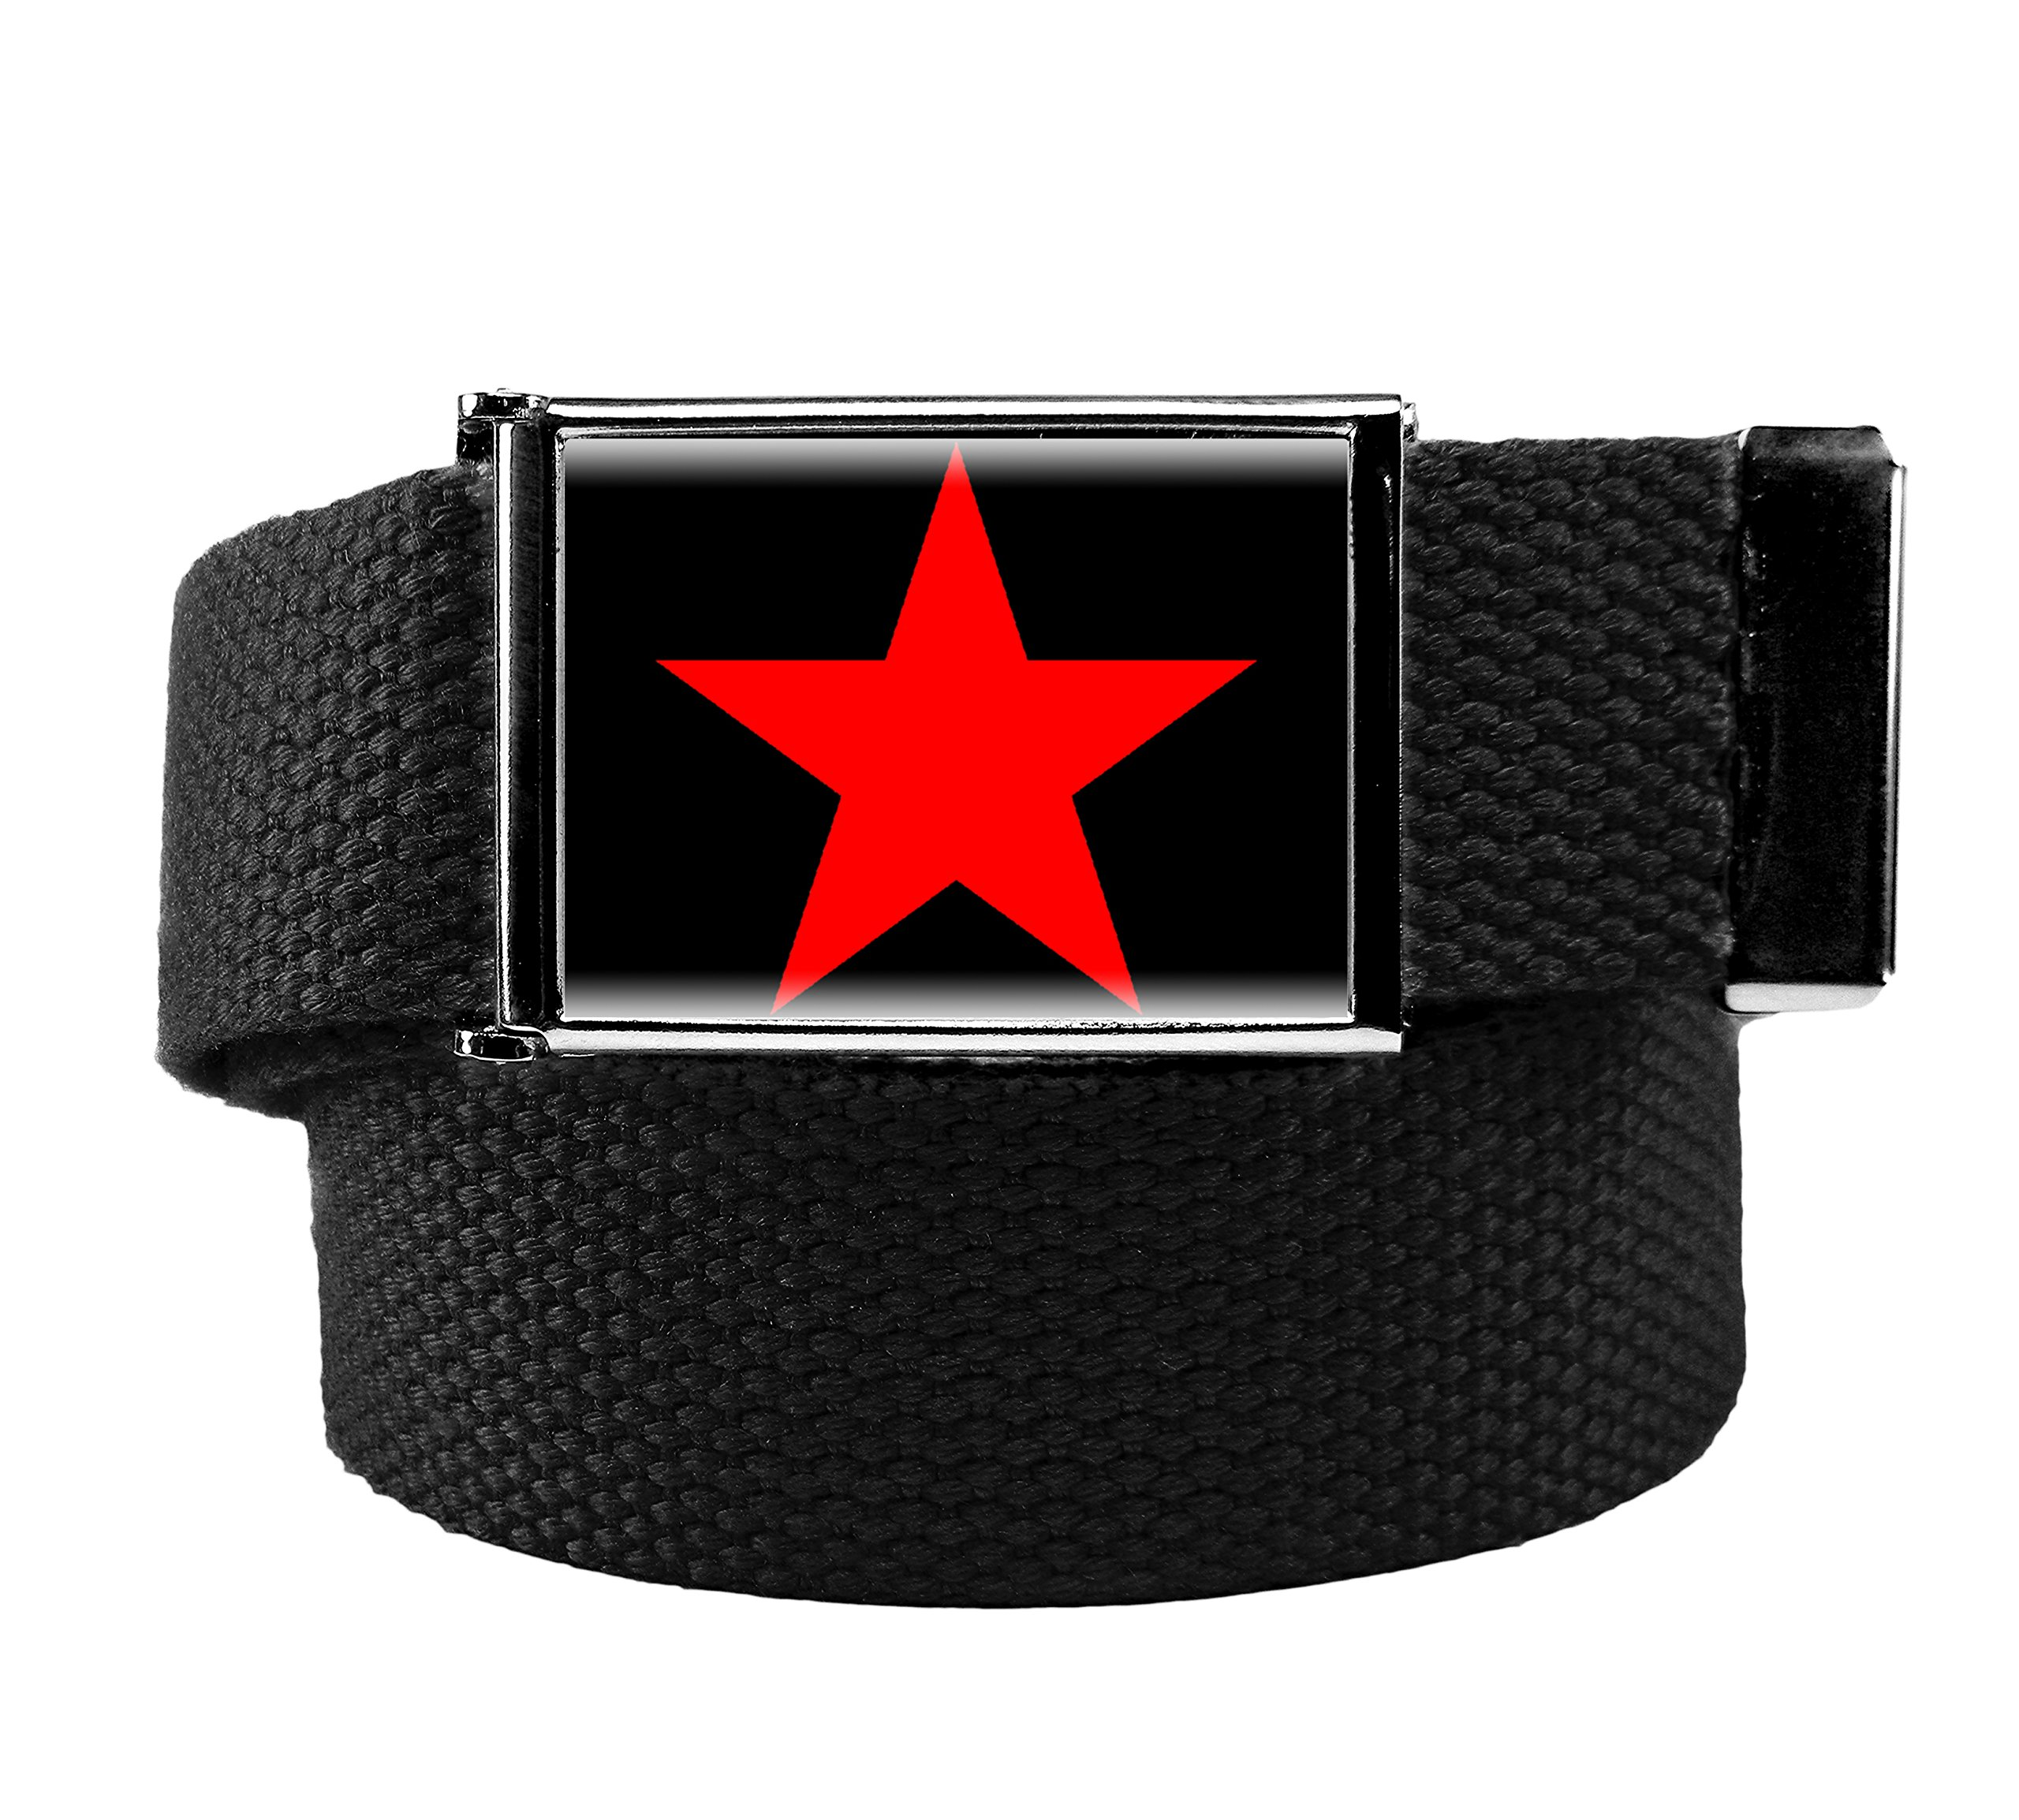 Red Star Flip Top Womens Belt Buckle with Canvas Web Belt XX-Large Black